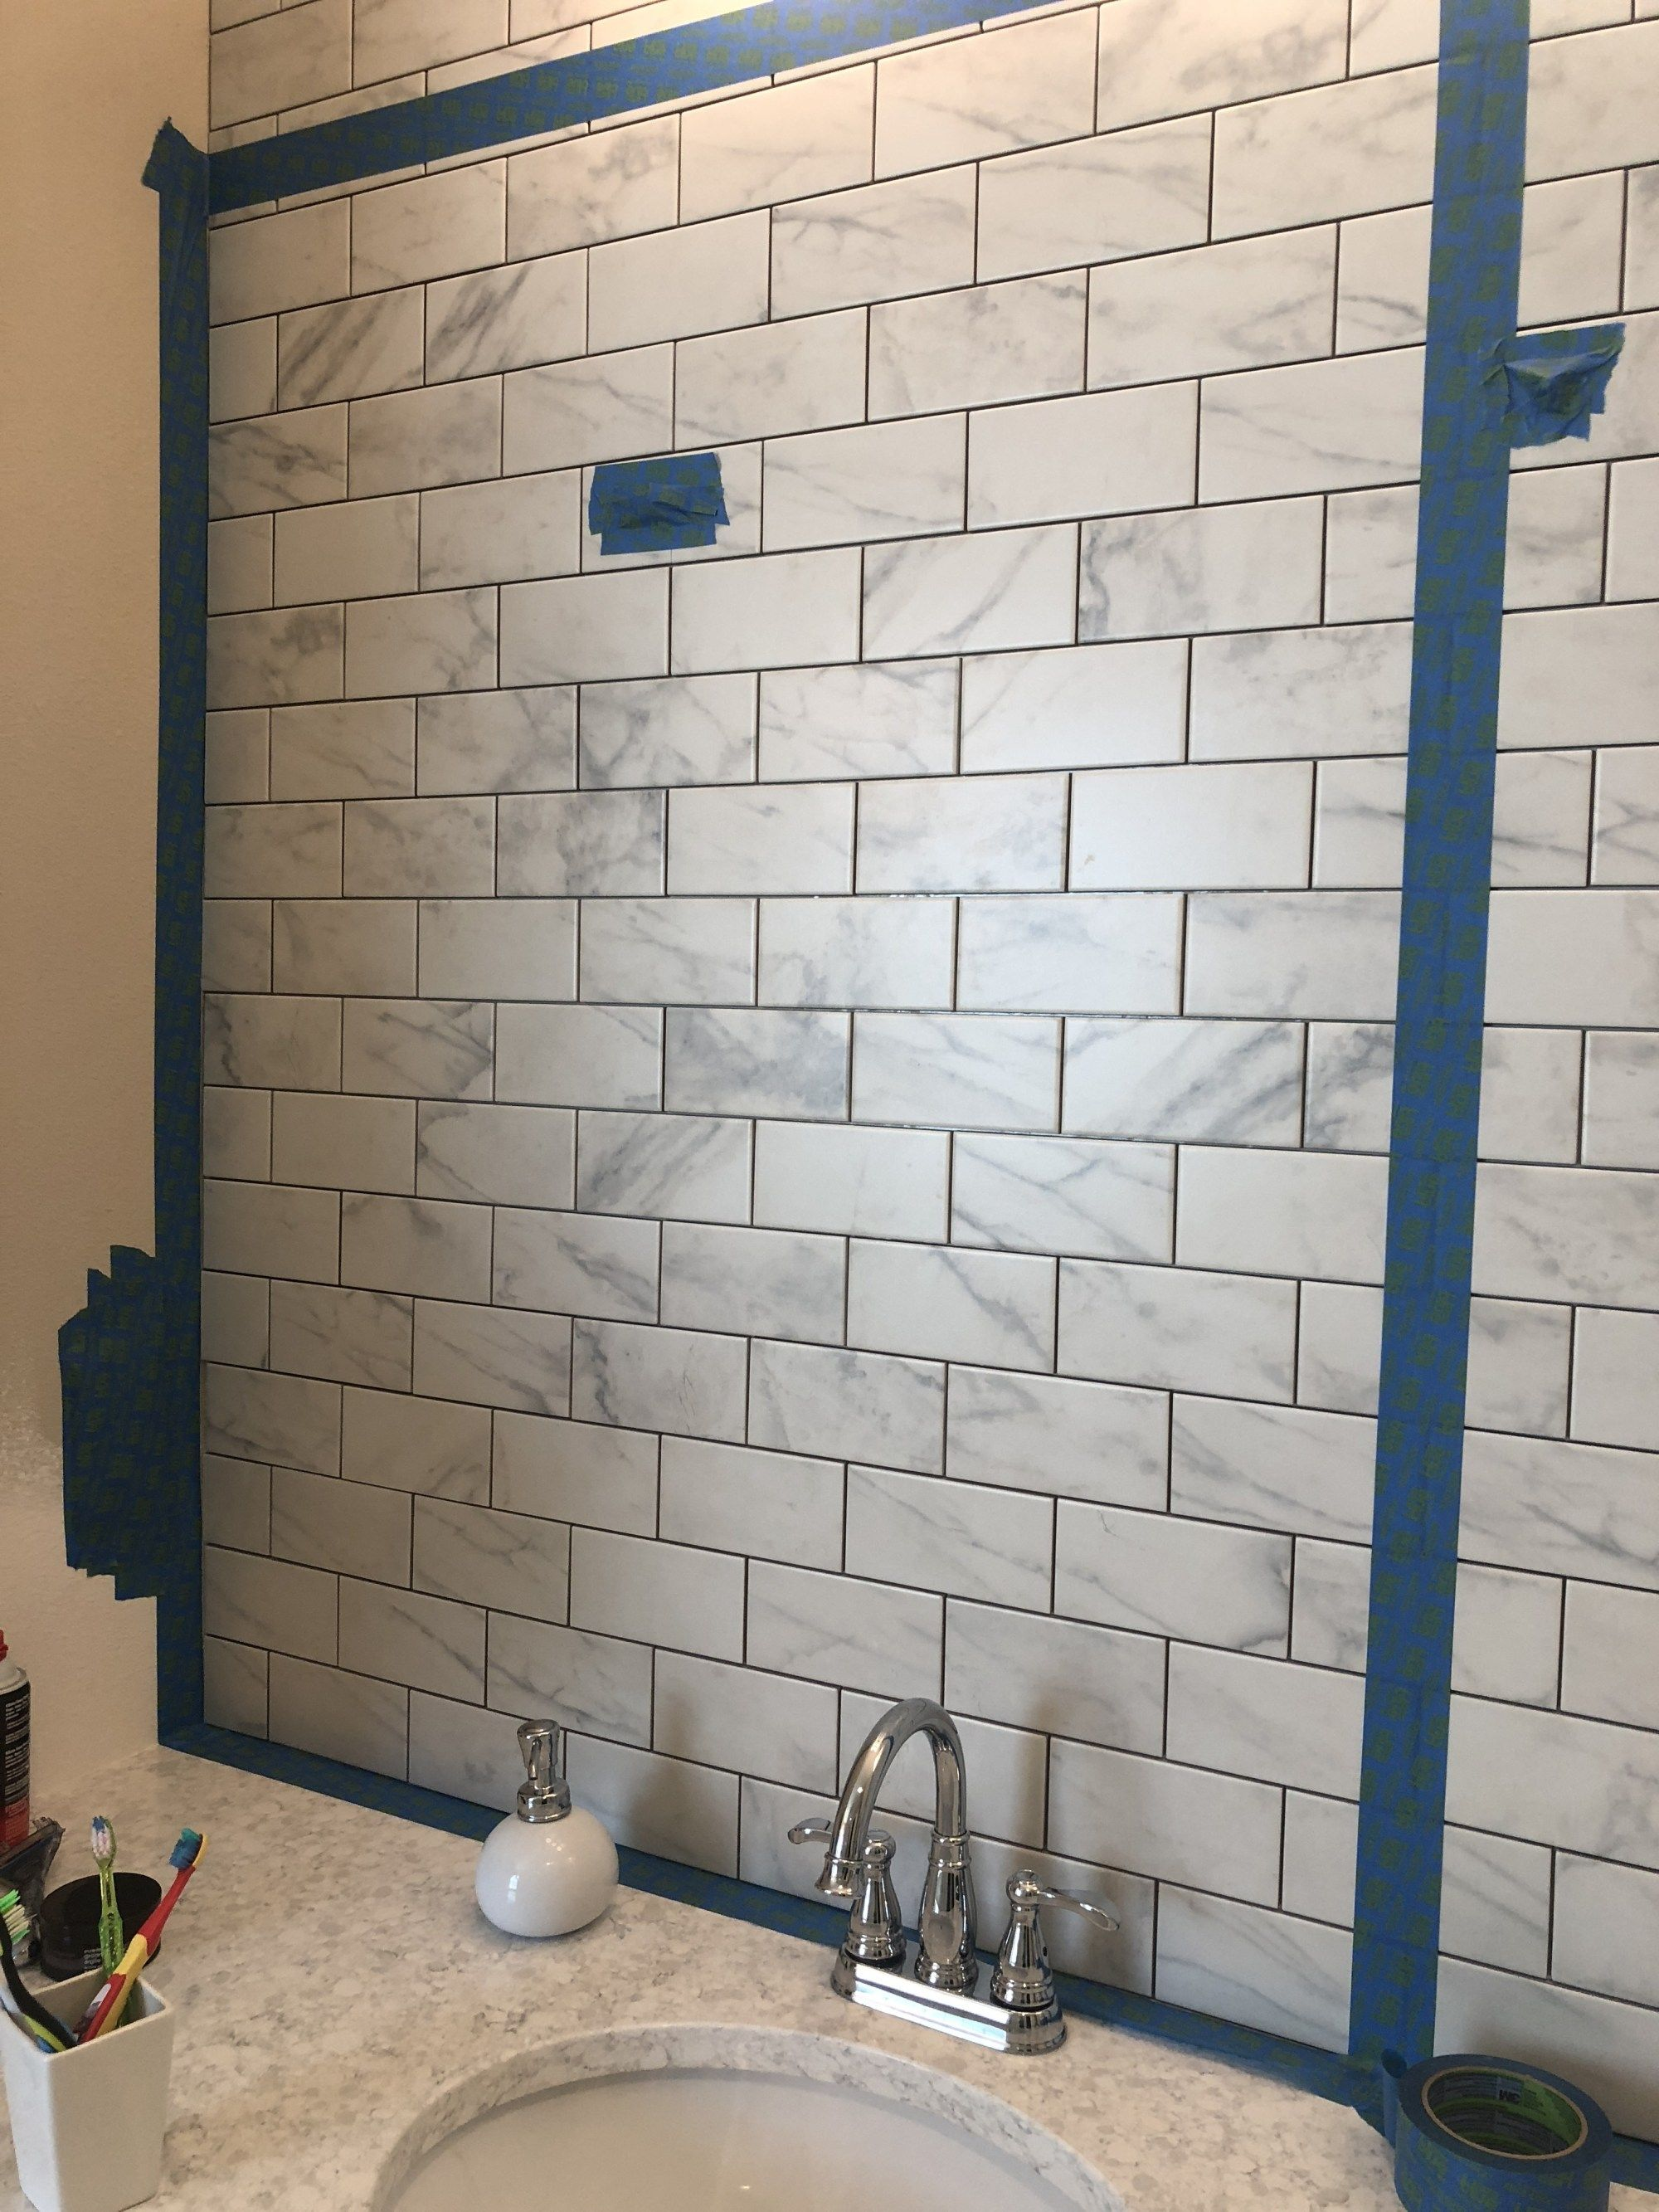 Diy Easy Bathroom Tile Wall Frills And Drills In 2020 Tile Bathroom Bathroom Wall Tile Simple Bathroom